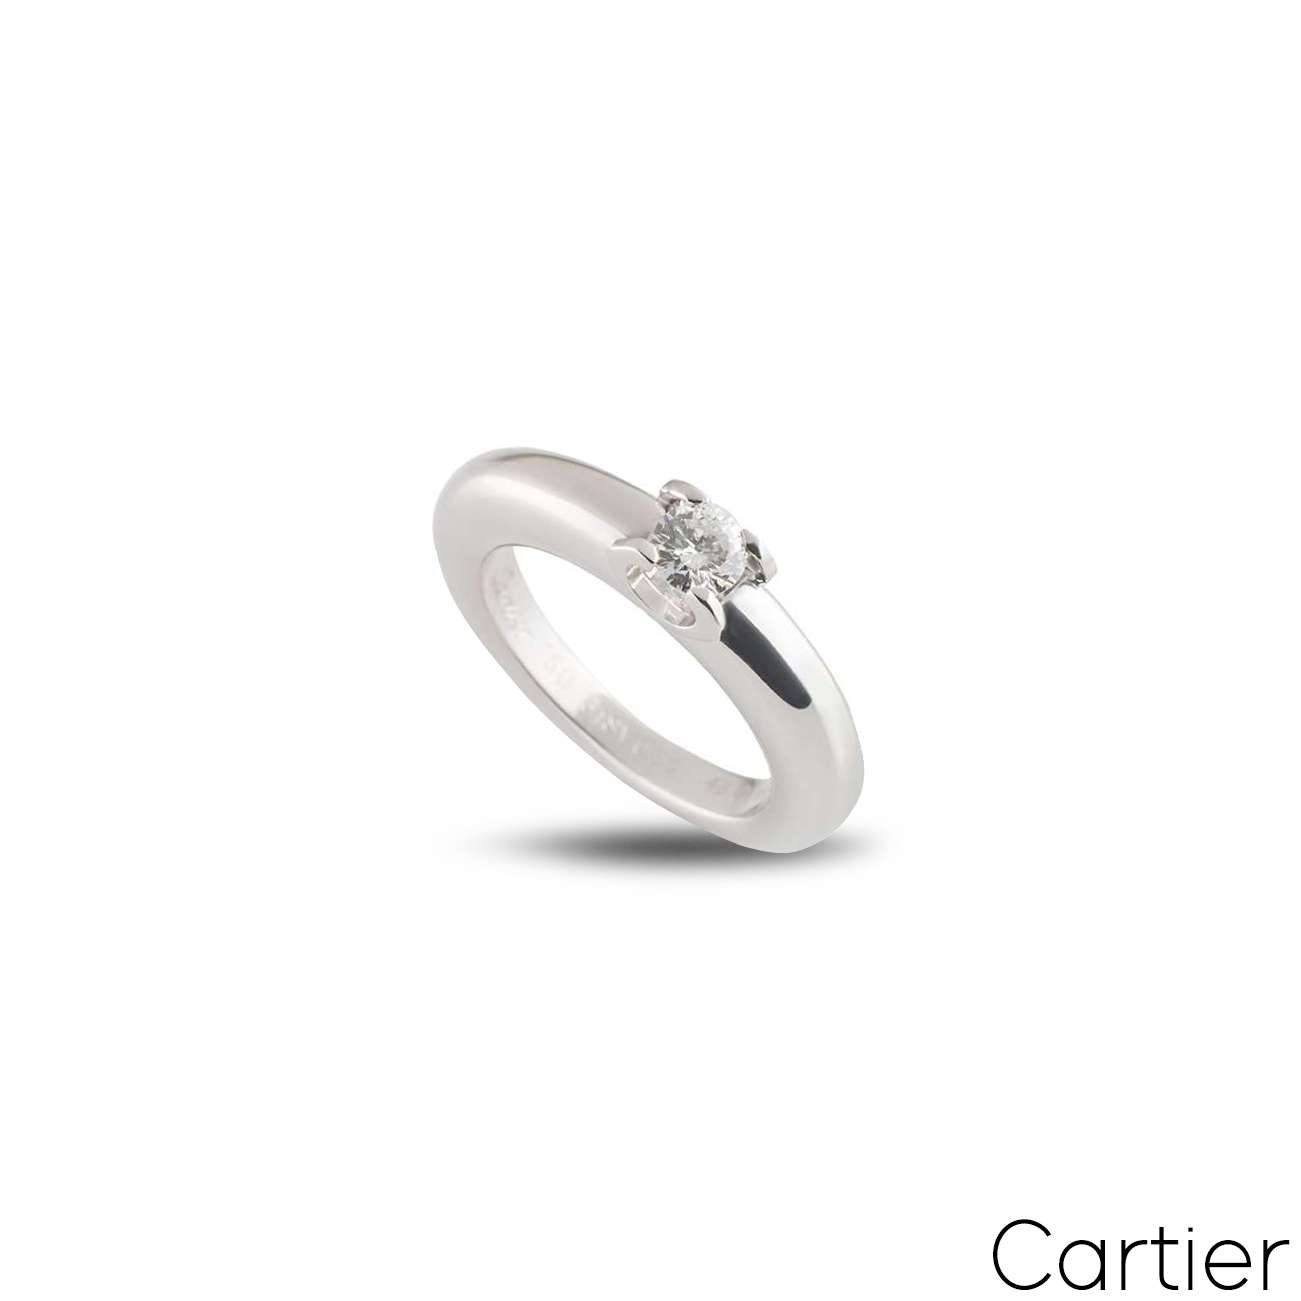 Cartier White Gold Diamond C De Cartier Ring Size 48